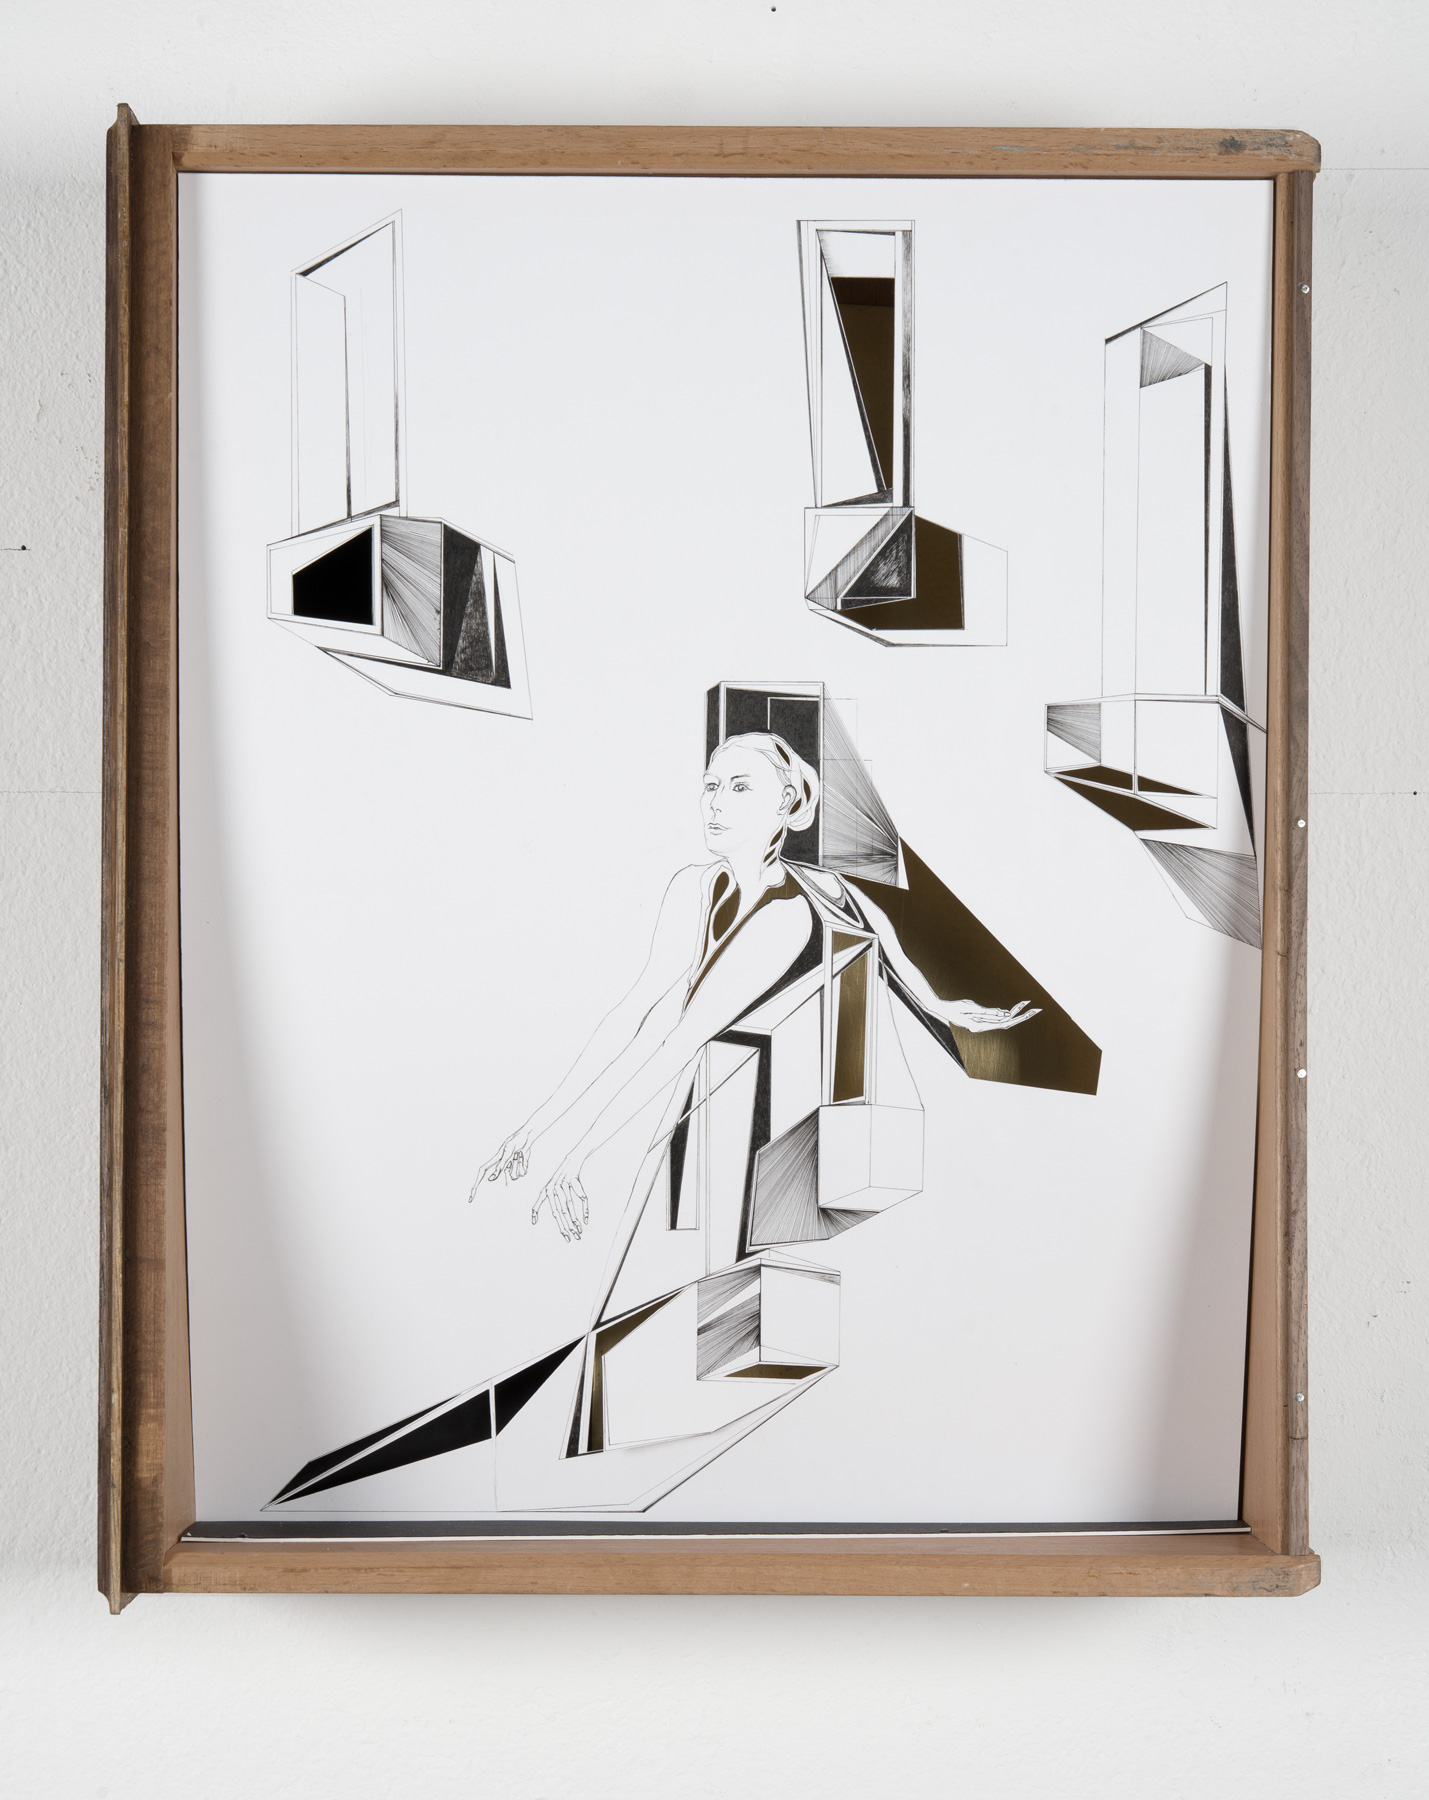 Nina Annabelle Märkl | Open doors | Ink on paper, cut outs, brass, wooden box | 46 x 38 x 11 cm | 2014